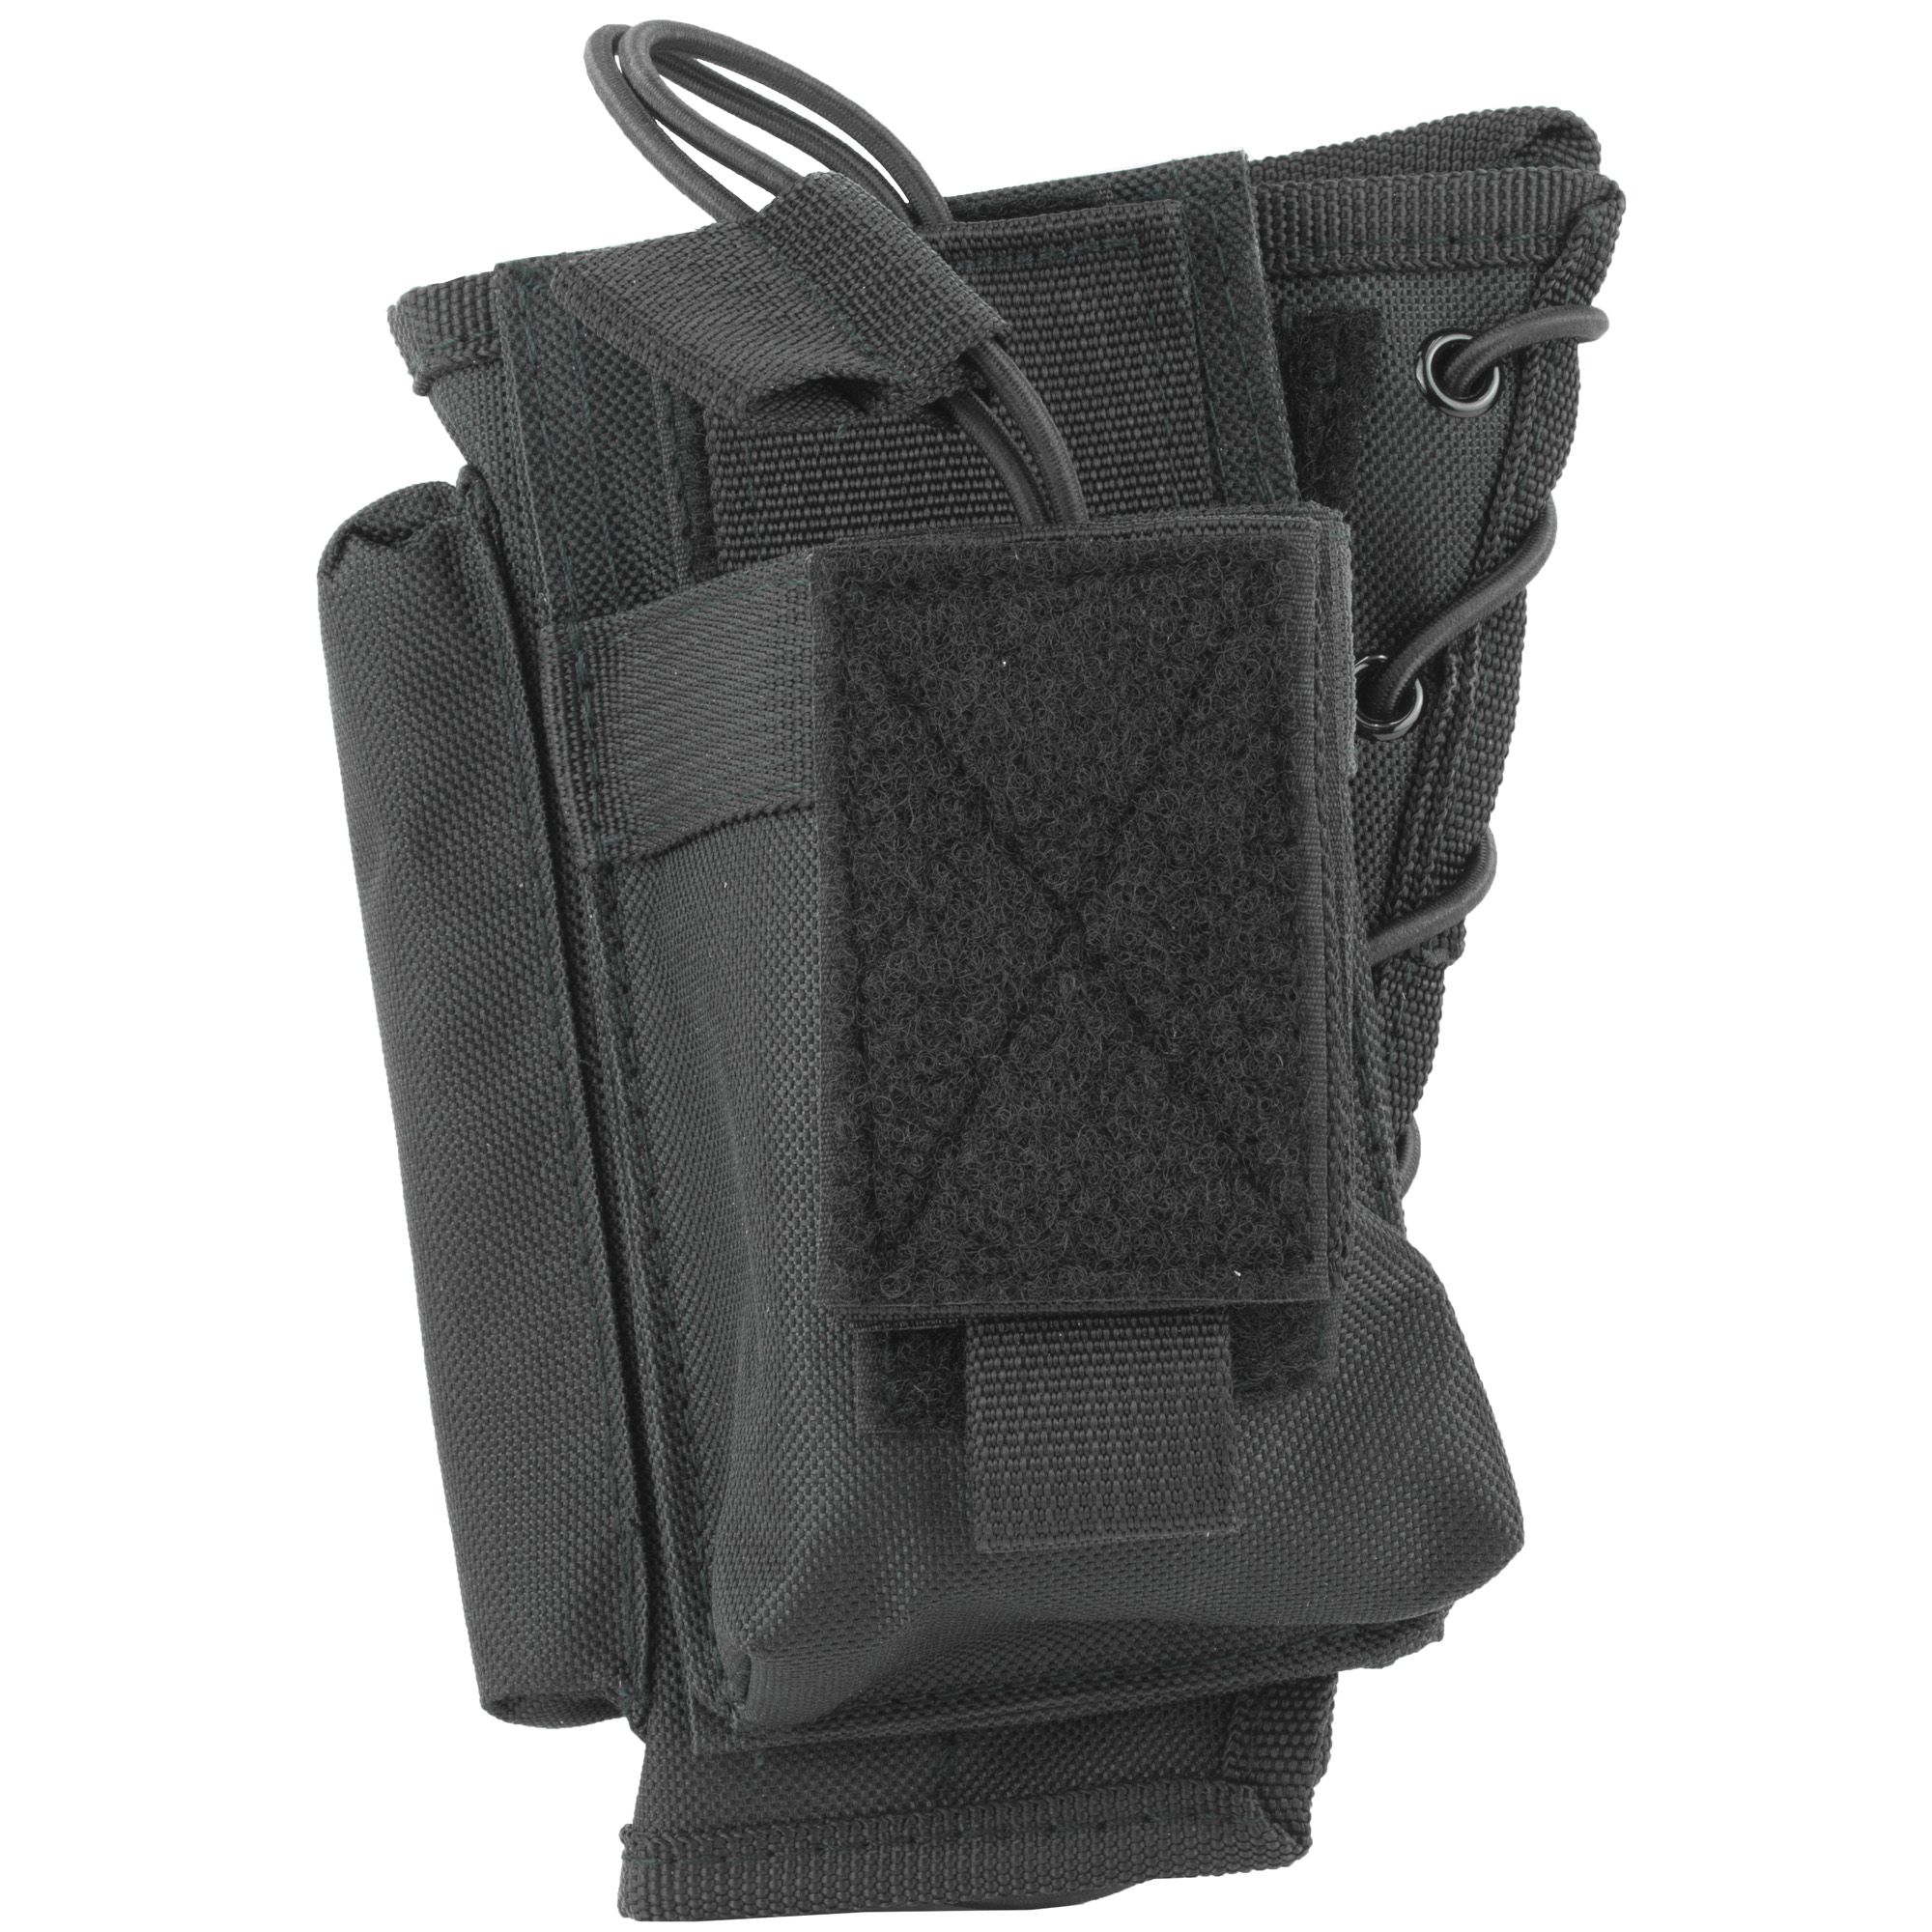 NCSTAR Rifle Stock Riser With Magazine Pouch – Black